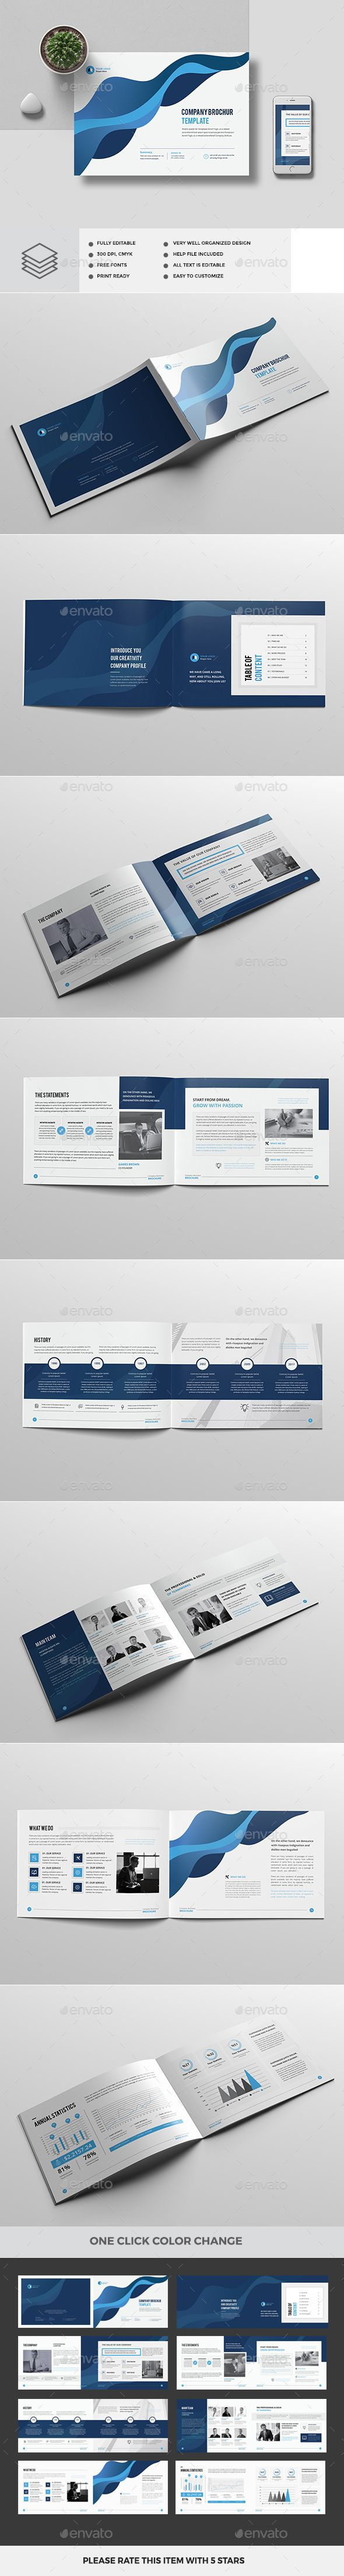 A4 Landscape Company Profile 16 Pages V2 - Corporate Brochures Download here : https://graphicriver.net/item/a4-landscape-company-profile-16-pages-v2/19454253?s_rank=74&ref=Al-fatih